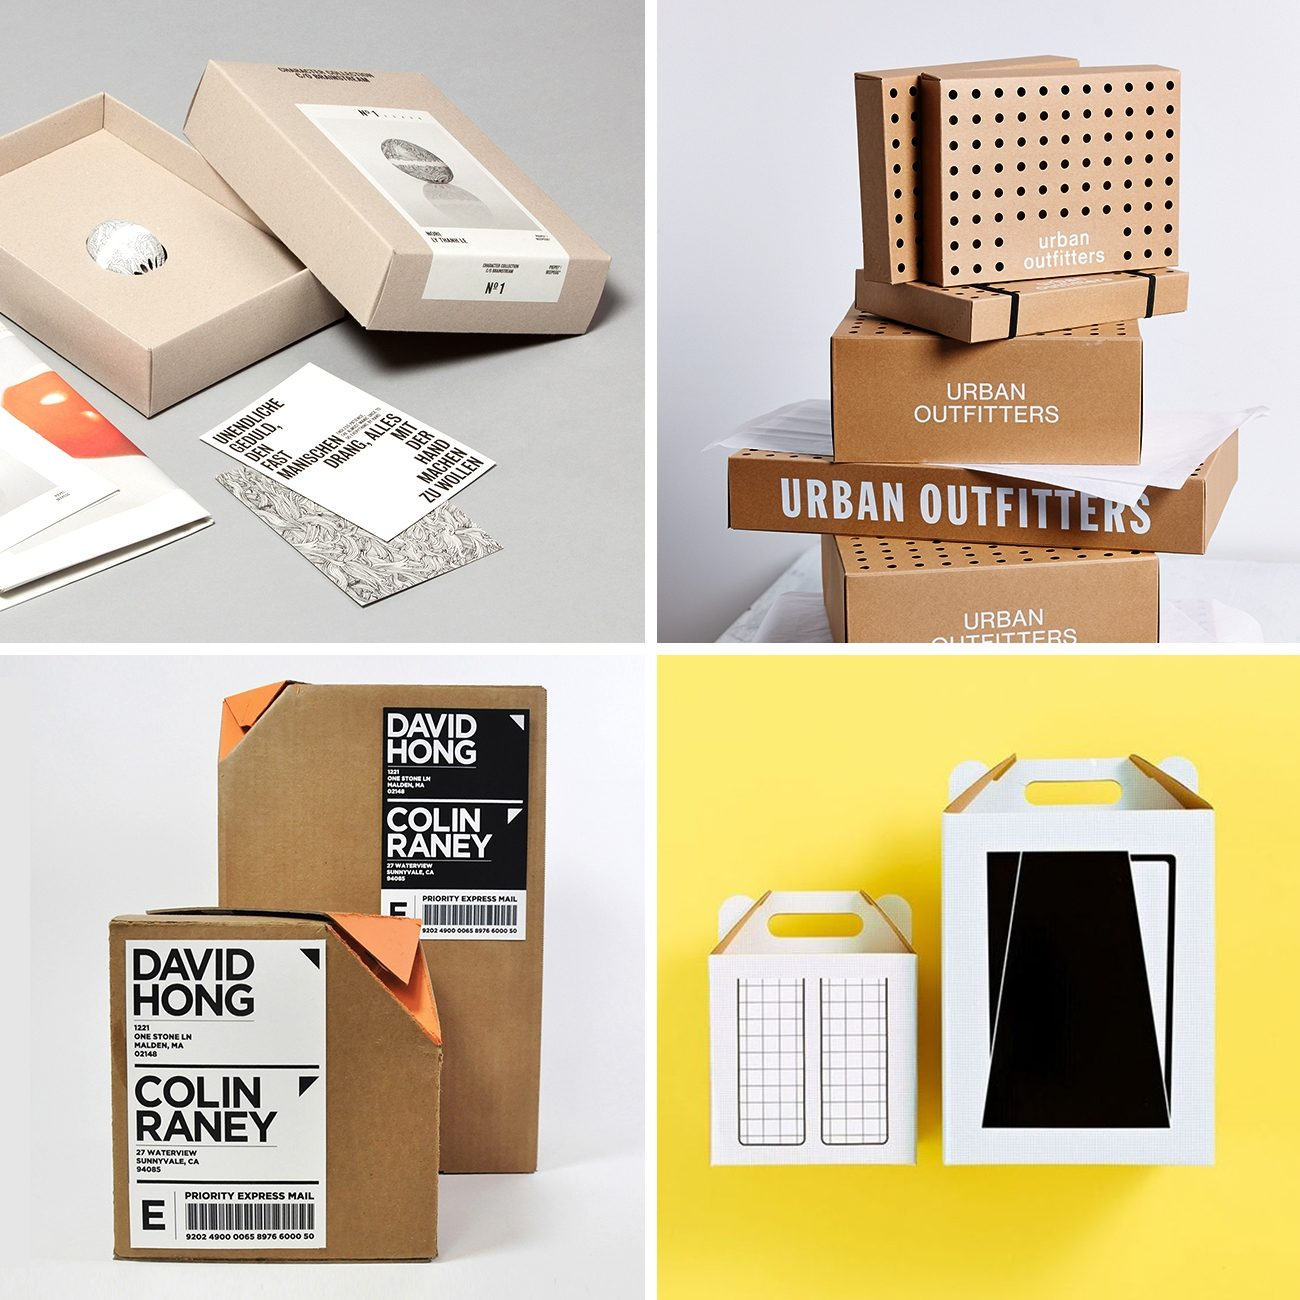 Photos via: A Practice for Everyday Life, Gabriel Klein, Ian Rousey, Chen Chen Hu, Allison Henry Aver 70 Ideas to Spruce Up Your Holiday Packaging Design